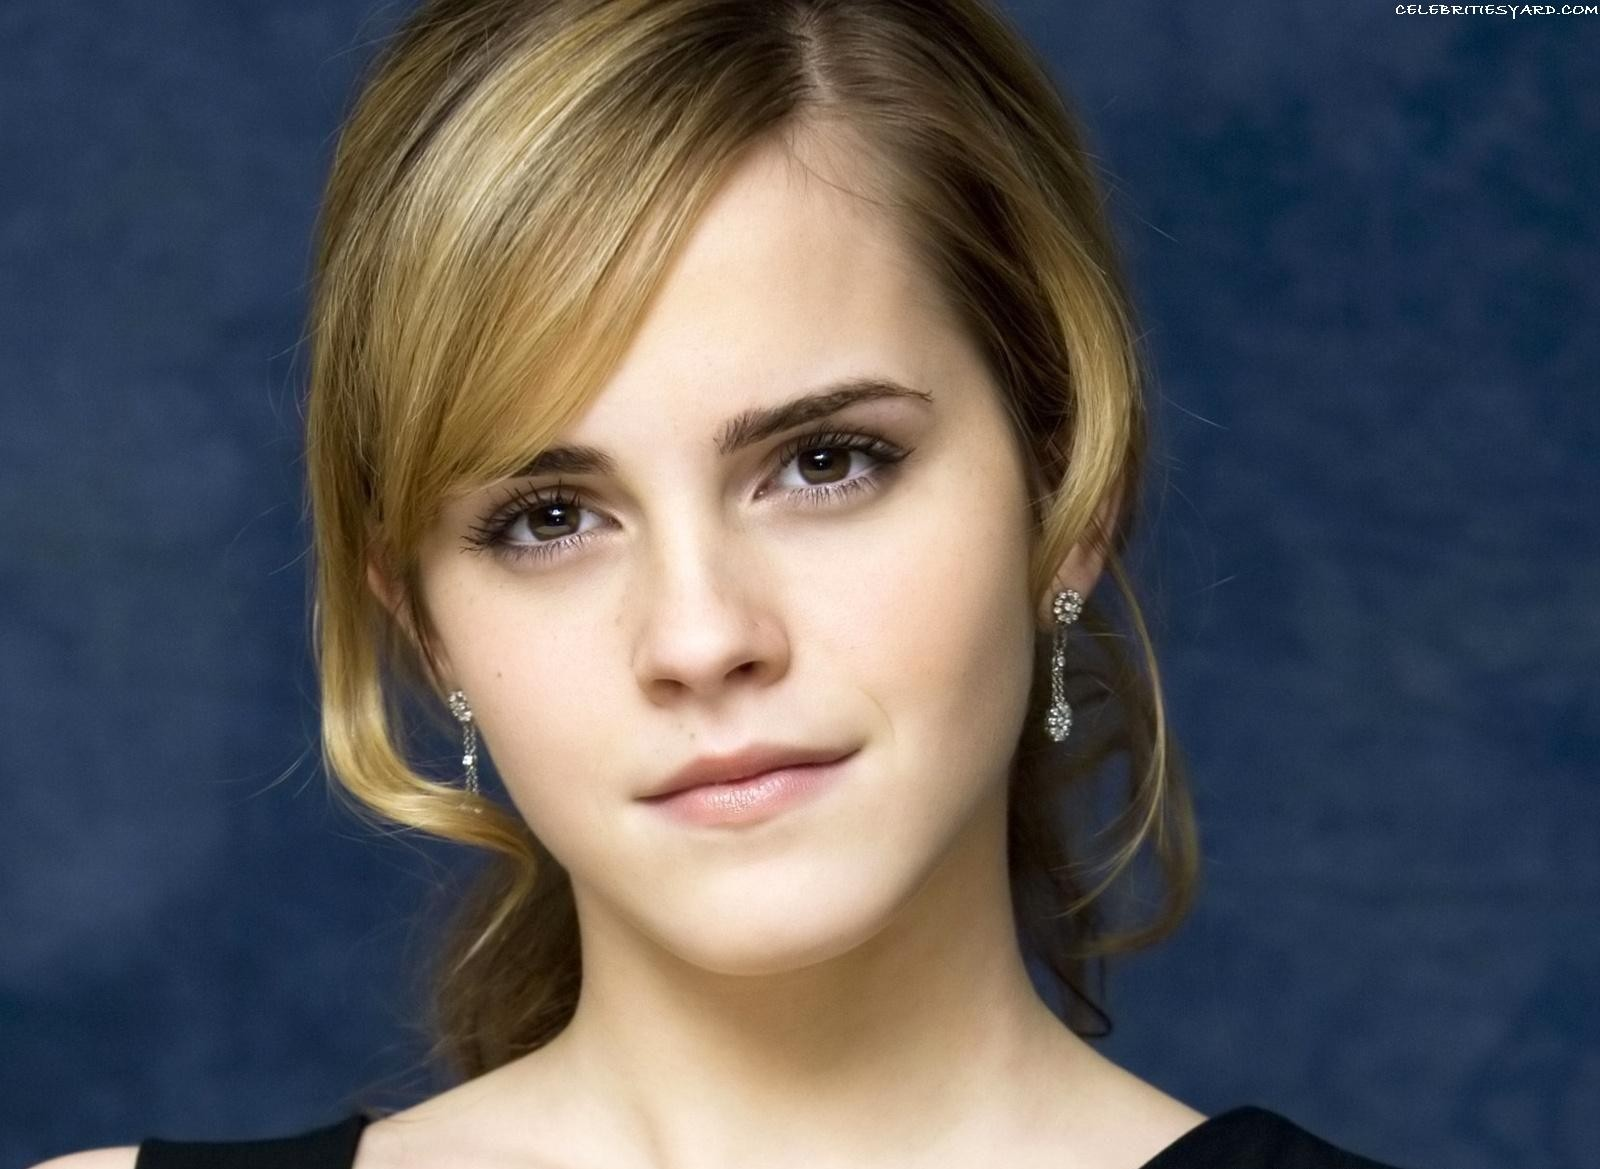 Hot Emma Watson Wallpaper